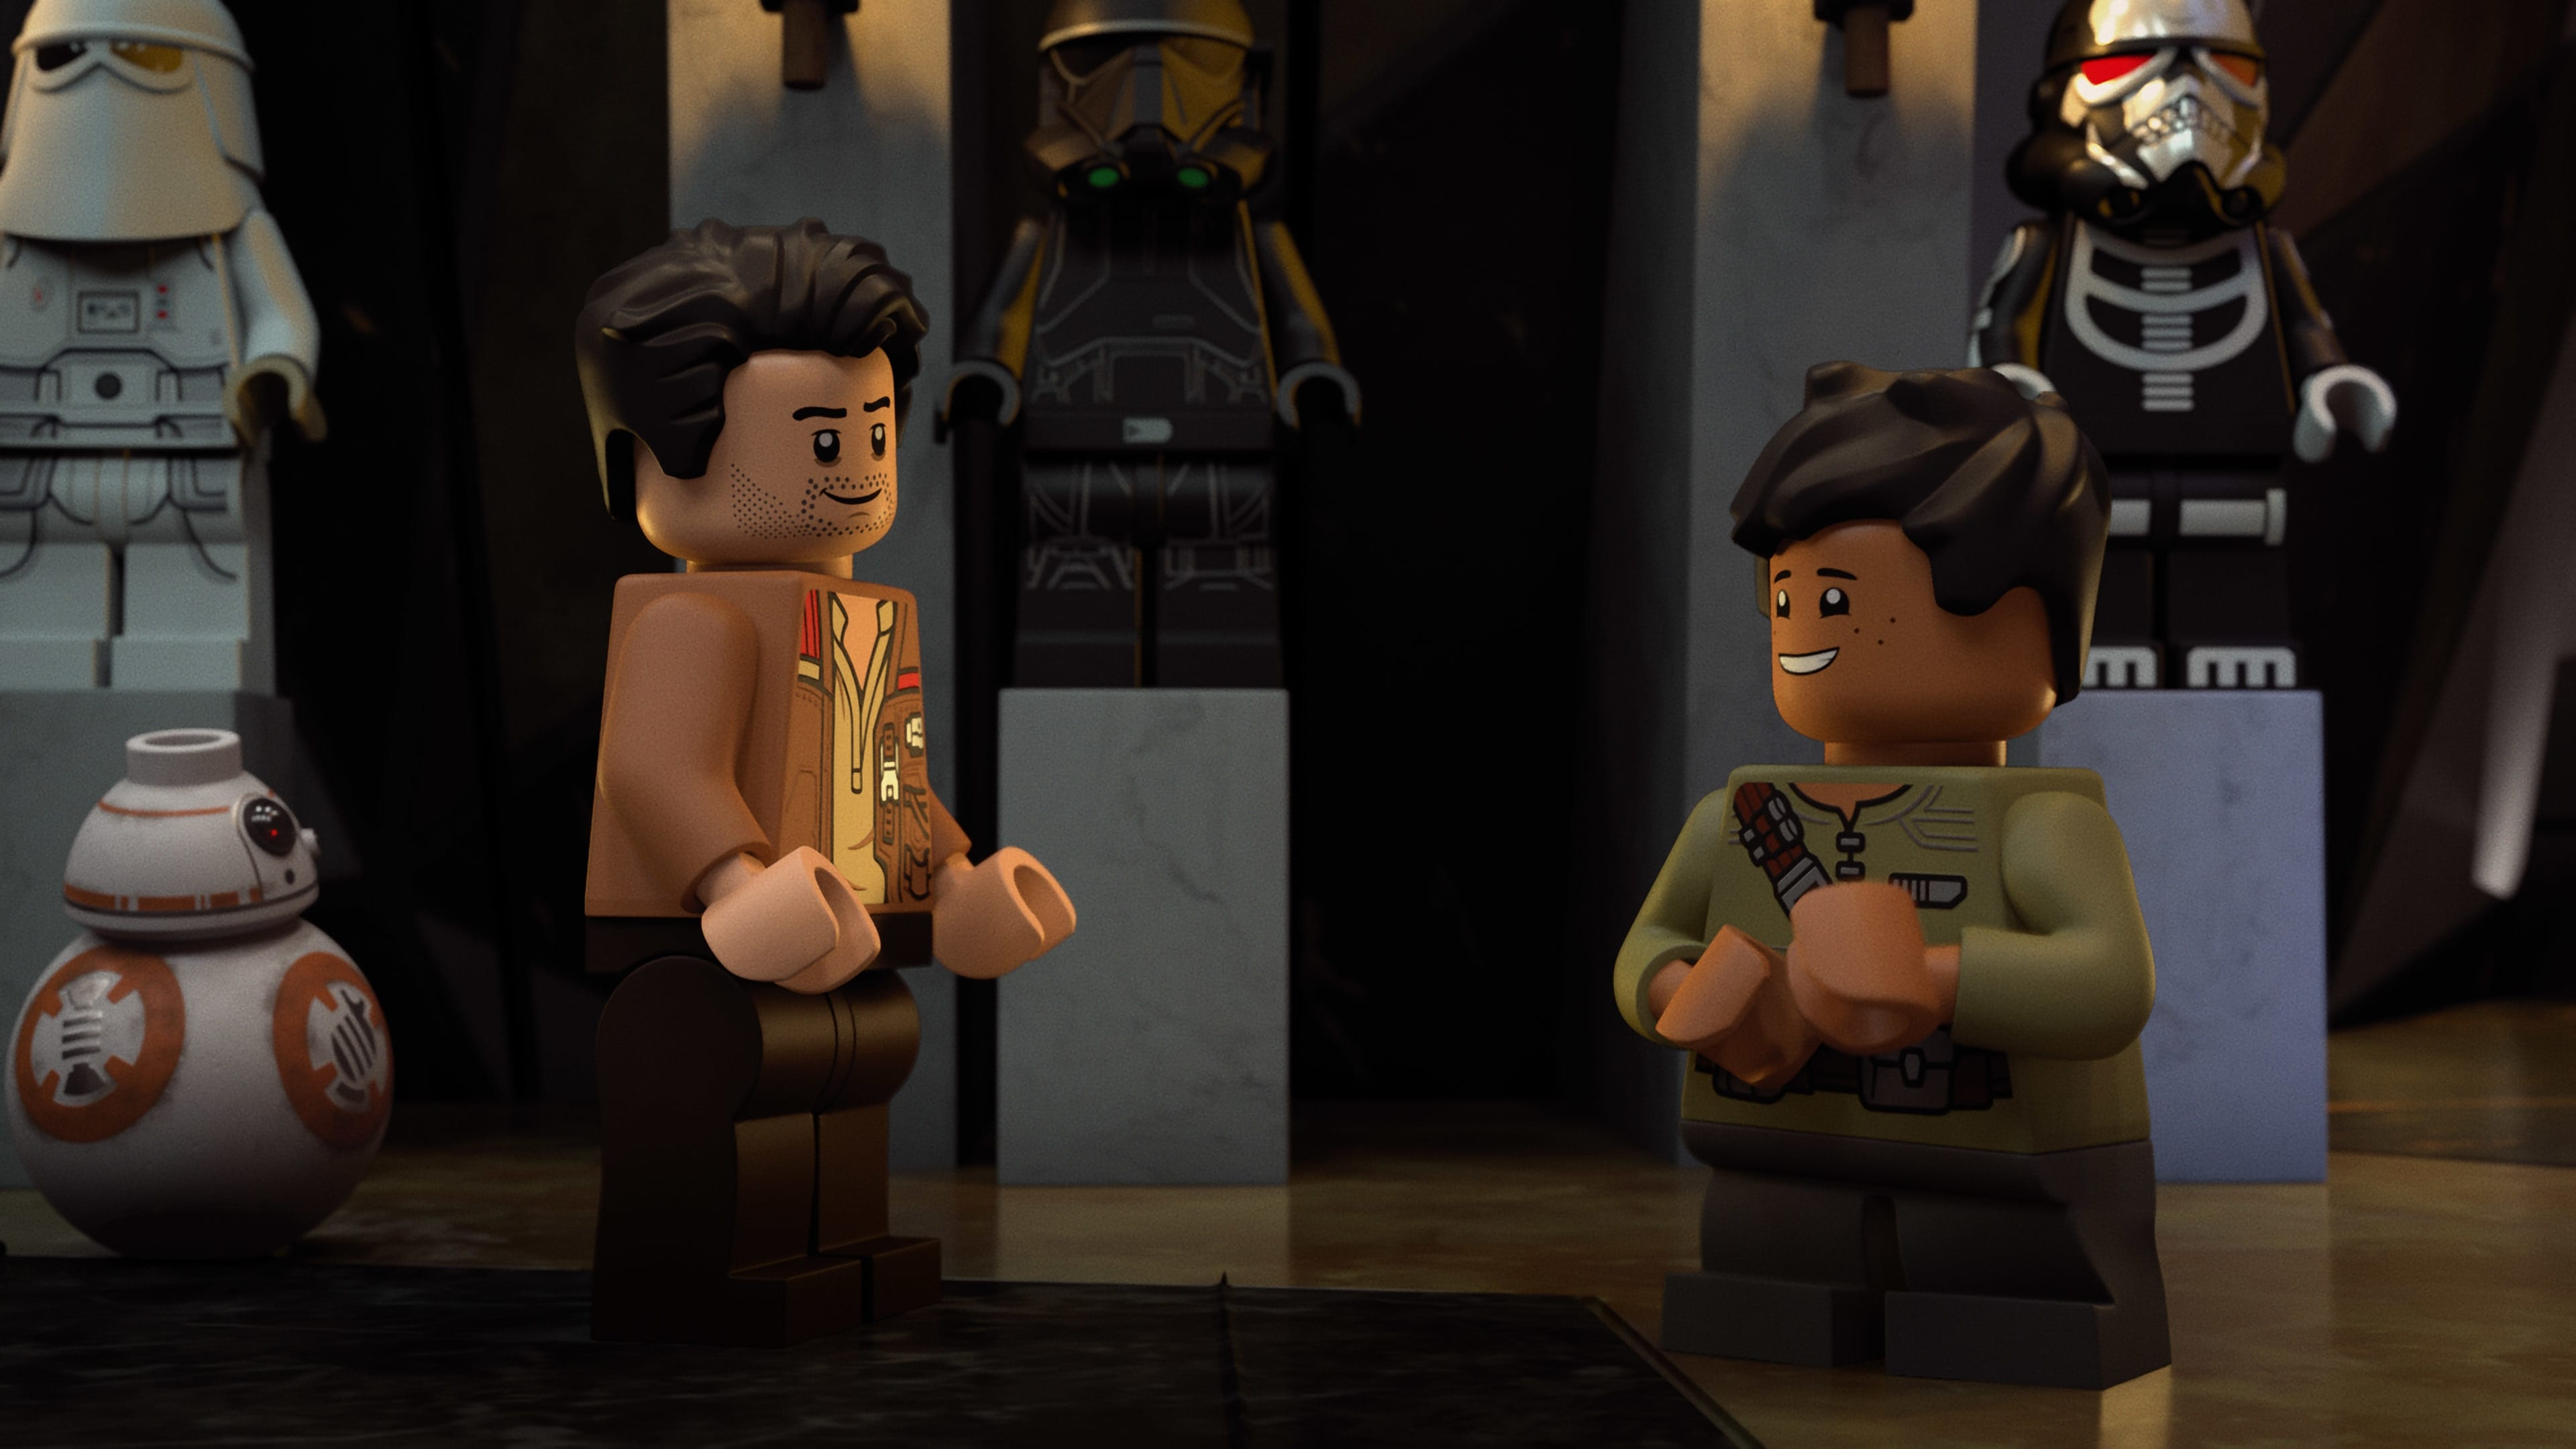 (L-R): BB-8, Poe, and Dean meet inside Castle Vader in LEGO STAR WARS TERRIFYING TALES exclusively on Disney+. ©2021 Lucasfilm Ltd. & TM. All Rights Reserved.